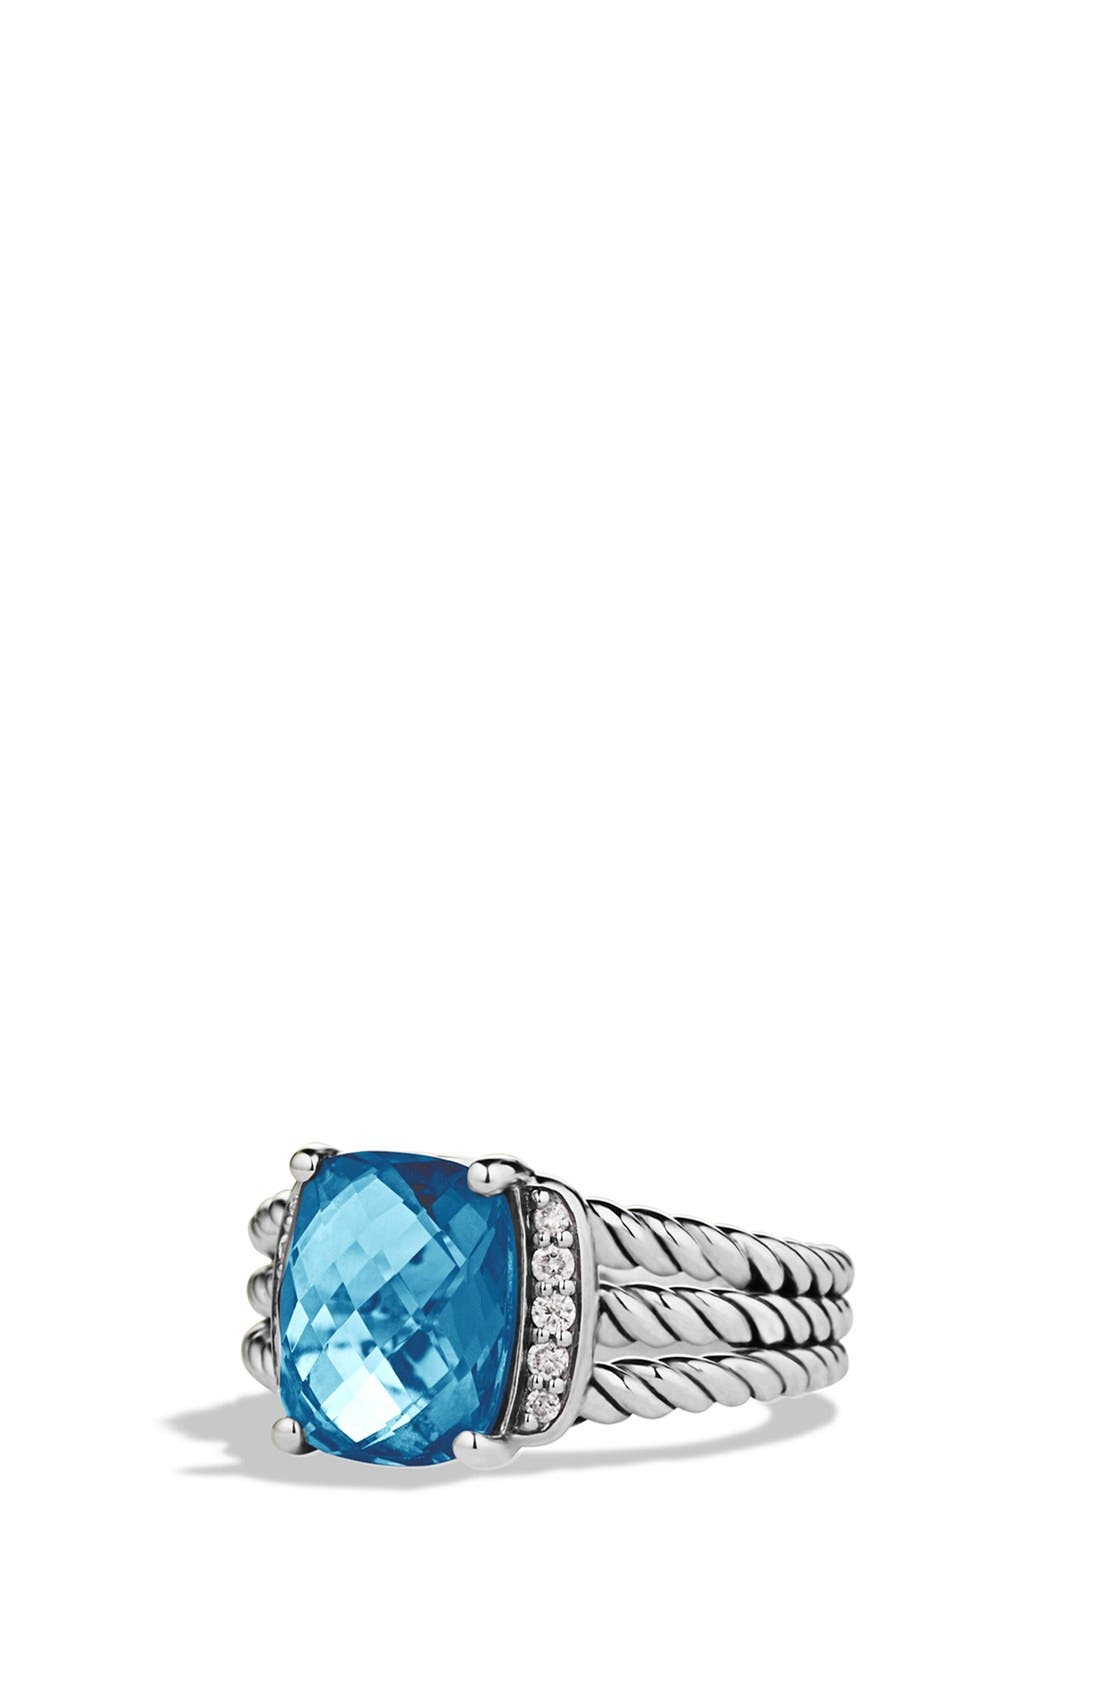 'Wheaton' Petite Ring with Semiprecious Stone & Diamonds,                             Main thumbnail 1, color,                             Hampton Blue Topaz